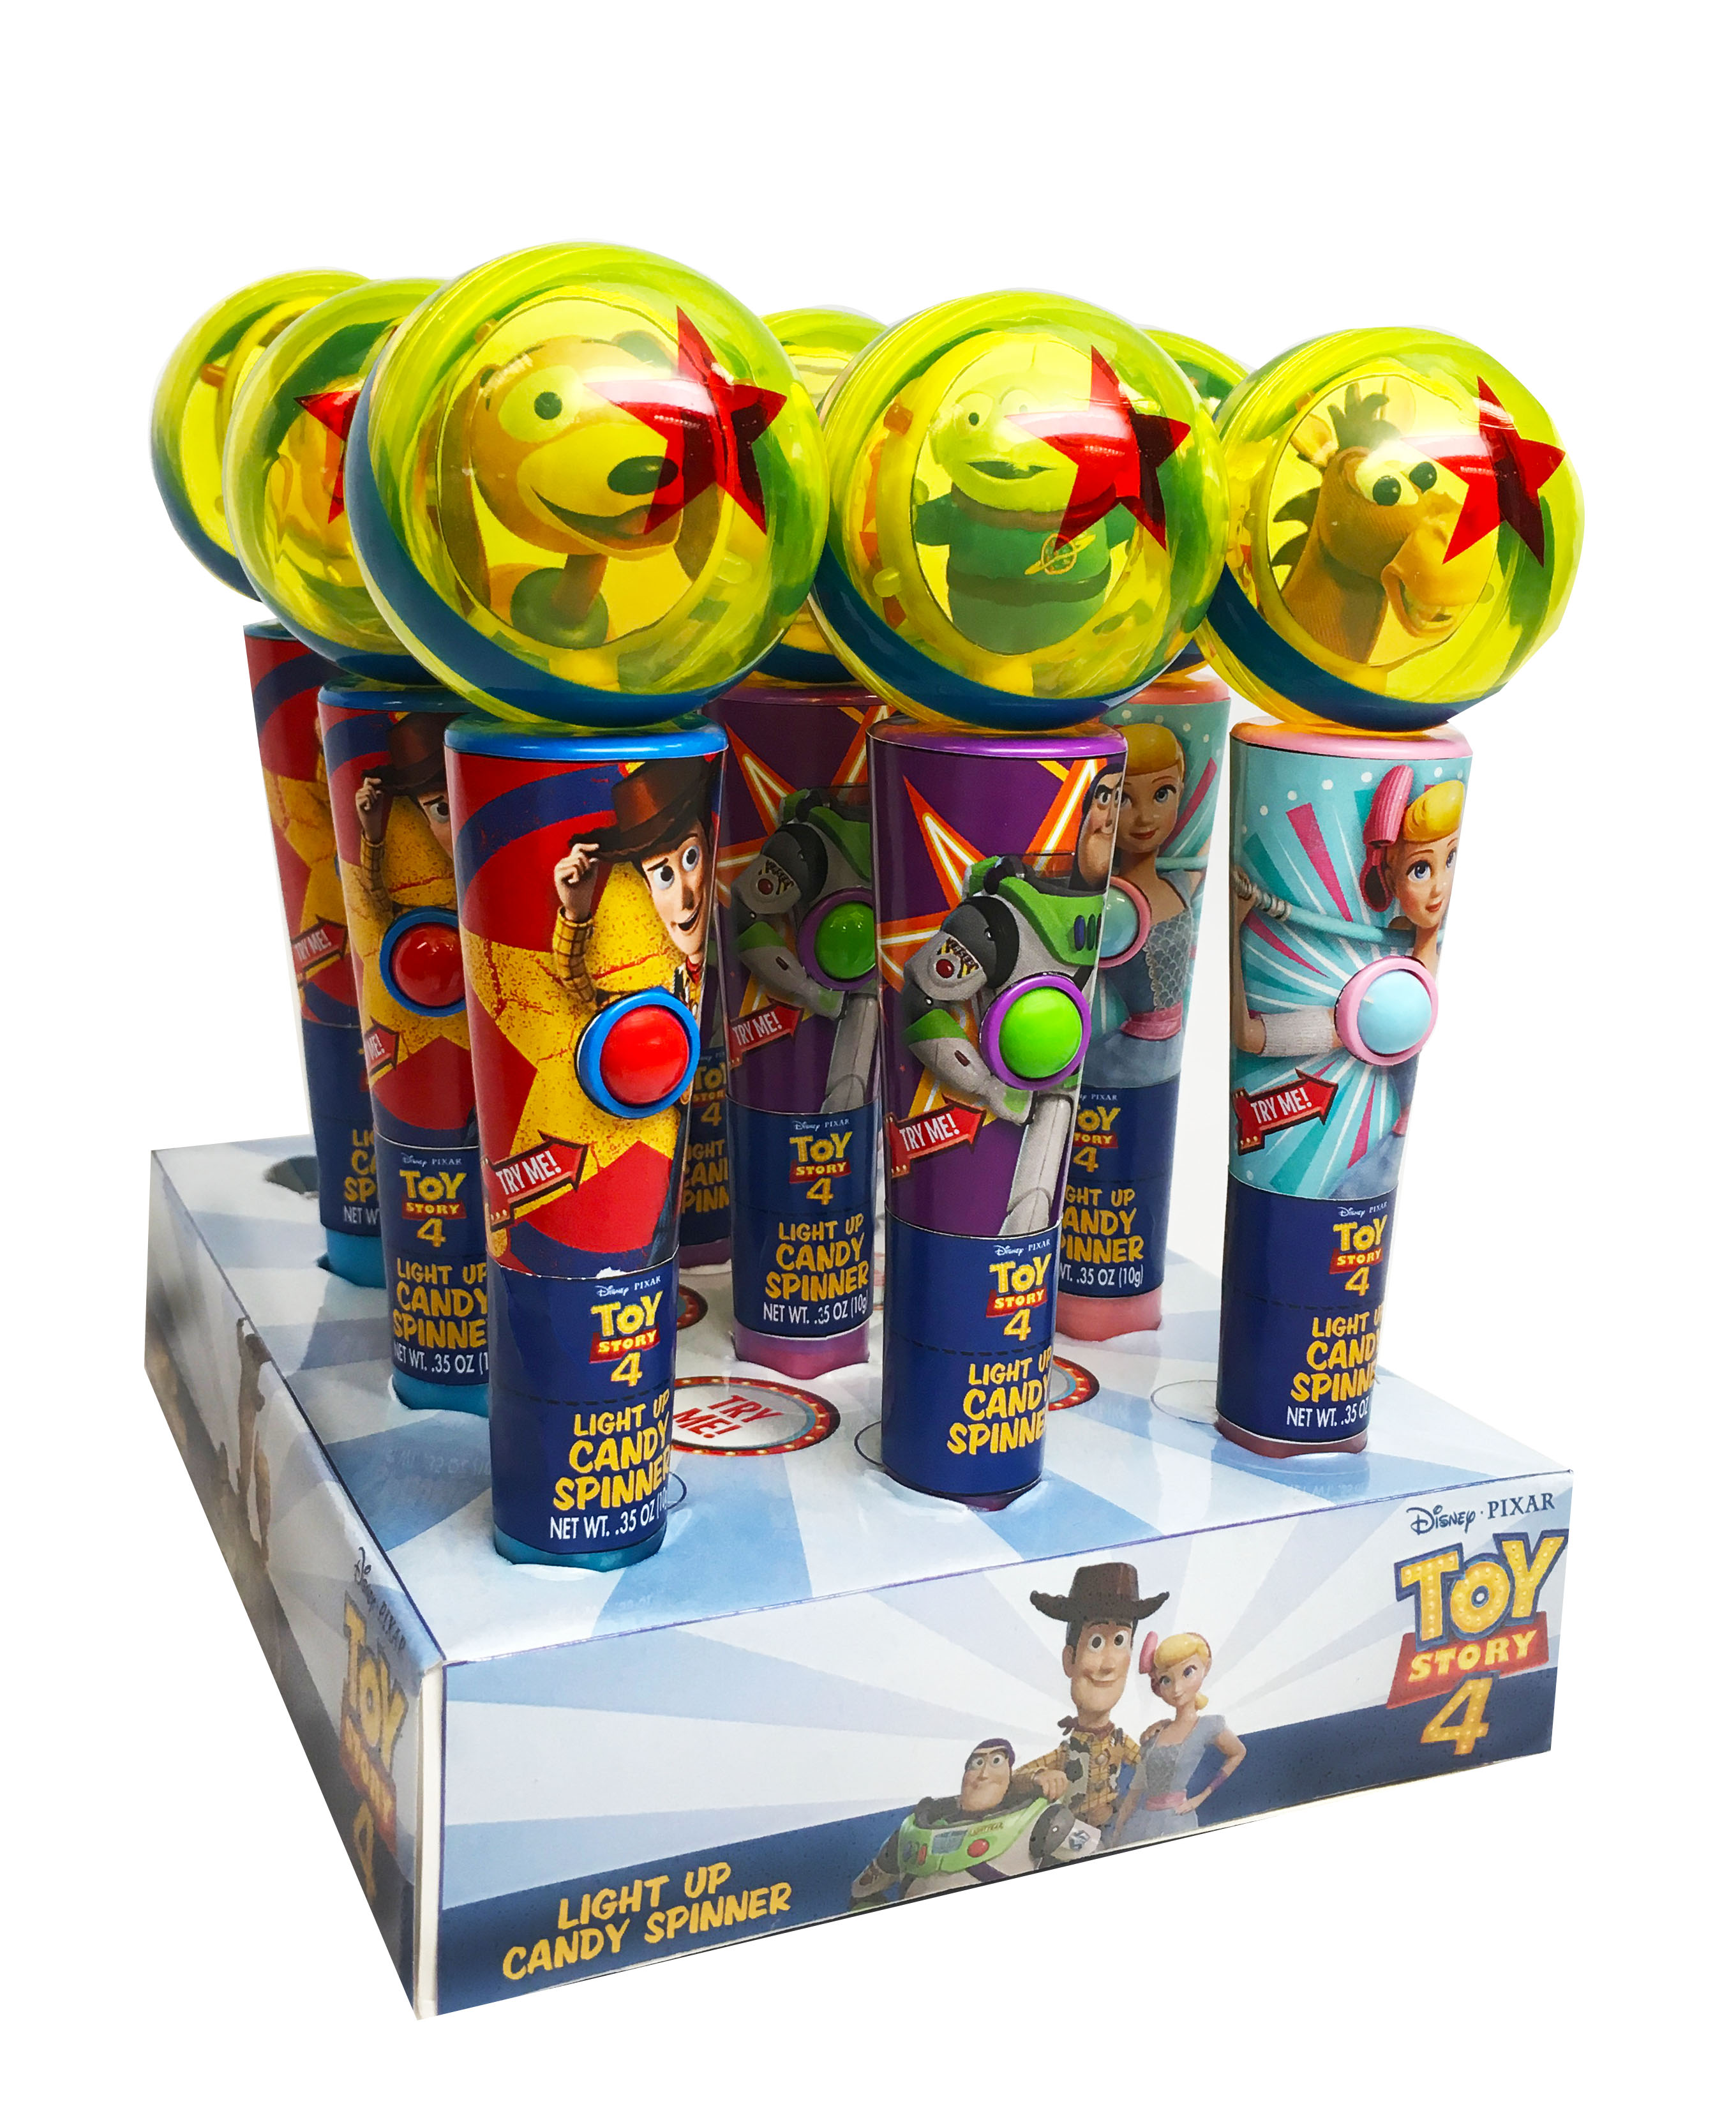 Toy Story Light Up Candy Spinner